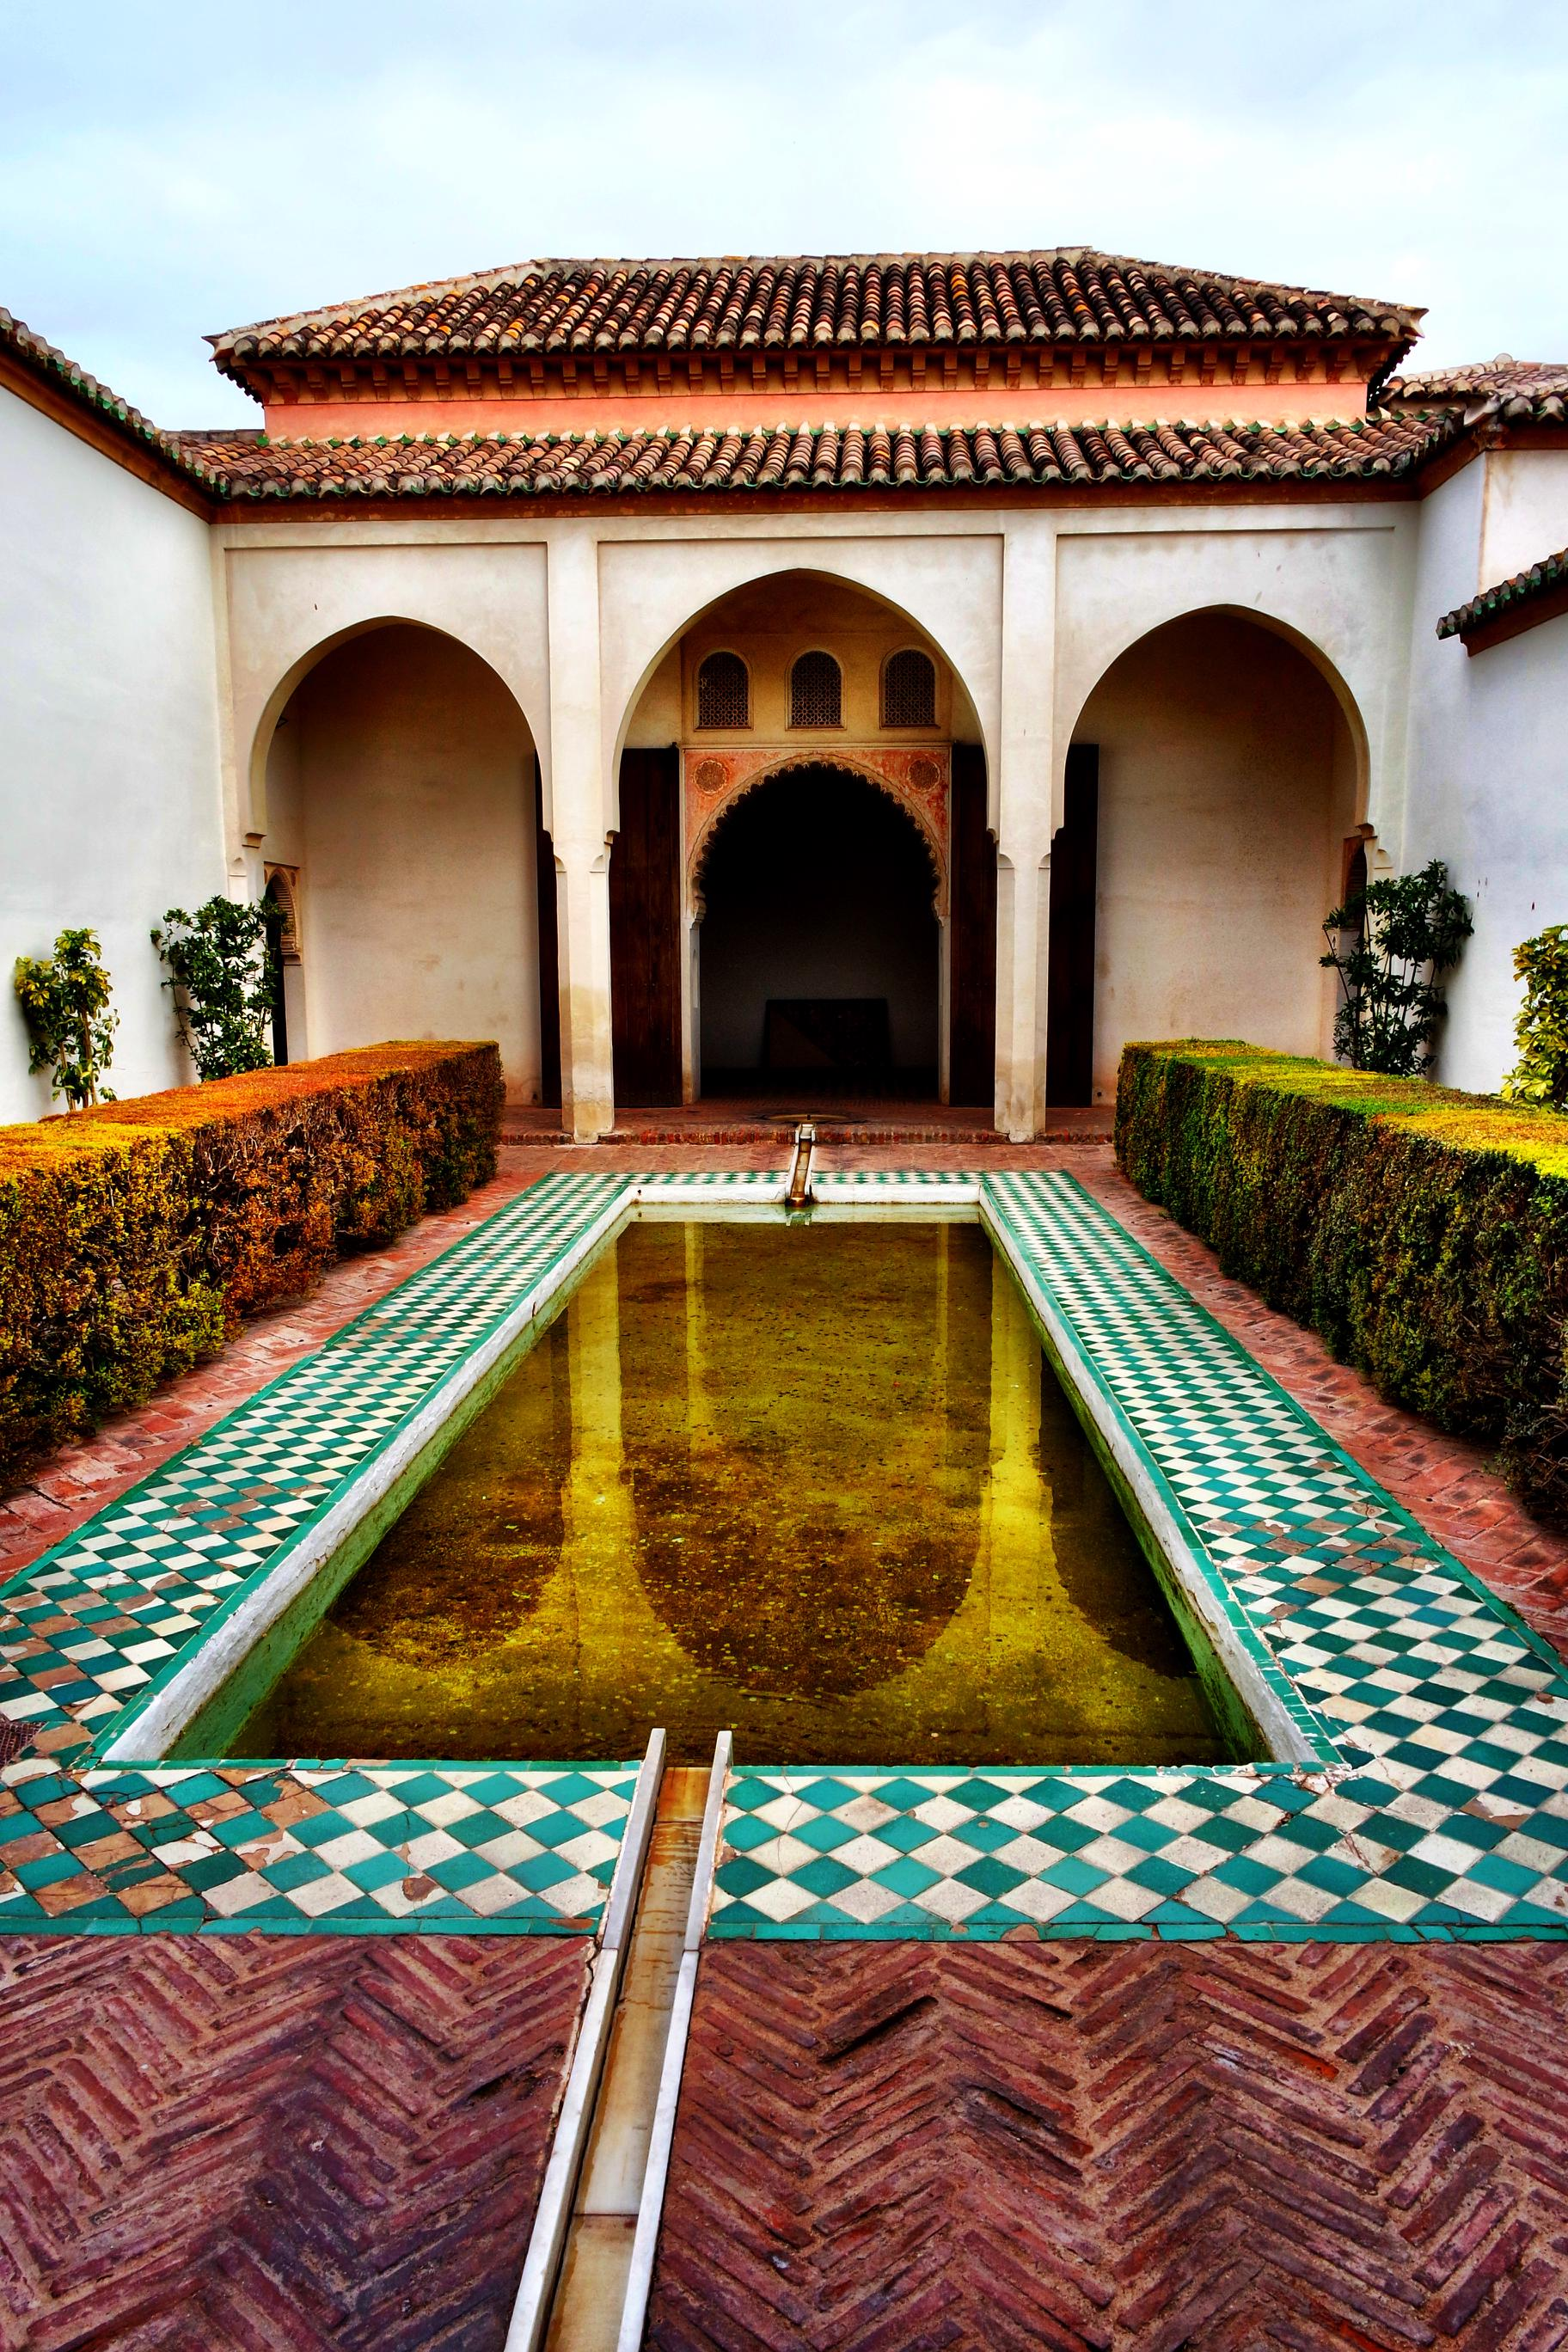 The reflecting pool in the Nasrid Palace area of the Alcazaba